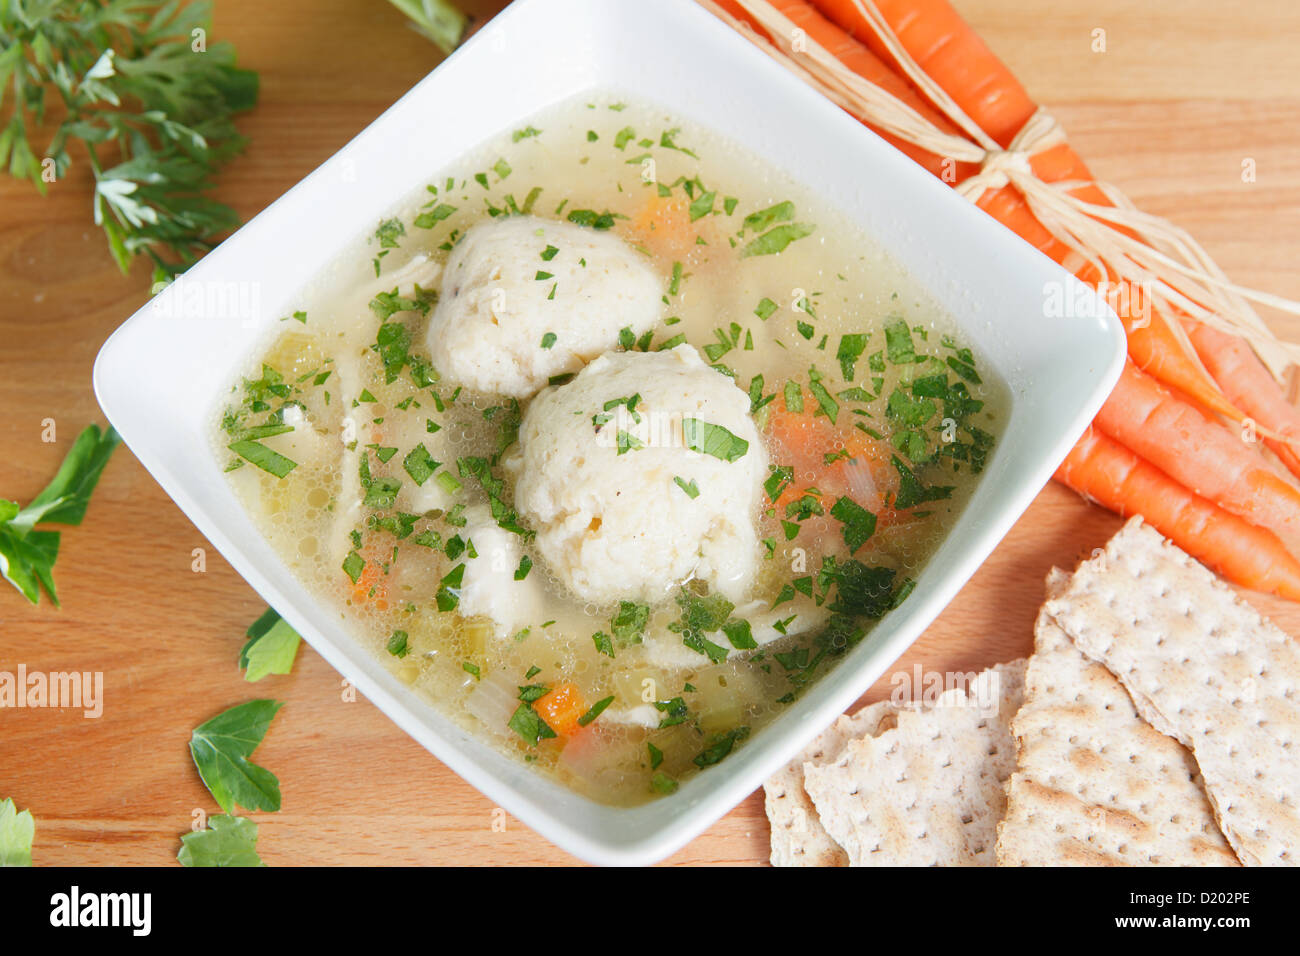 A single serving of kosher Matzah ball soup on a wooden table garnished with fresh carrots and Matzo crackers - Stock Image